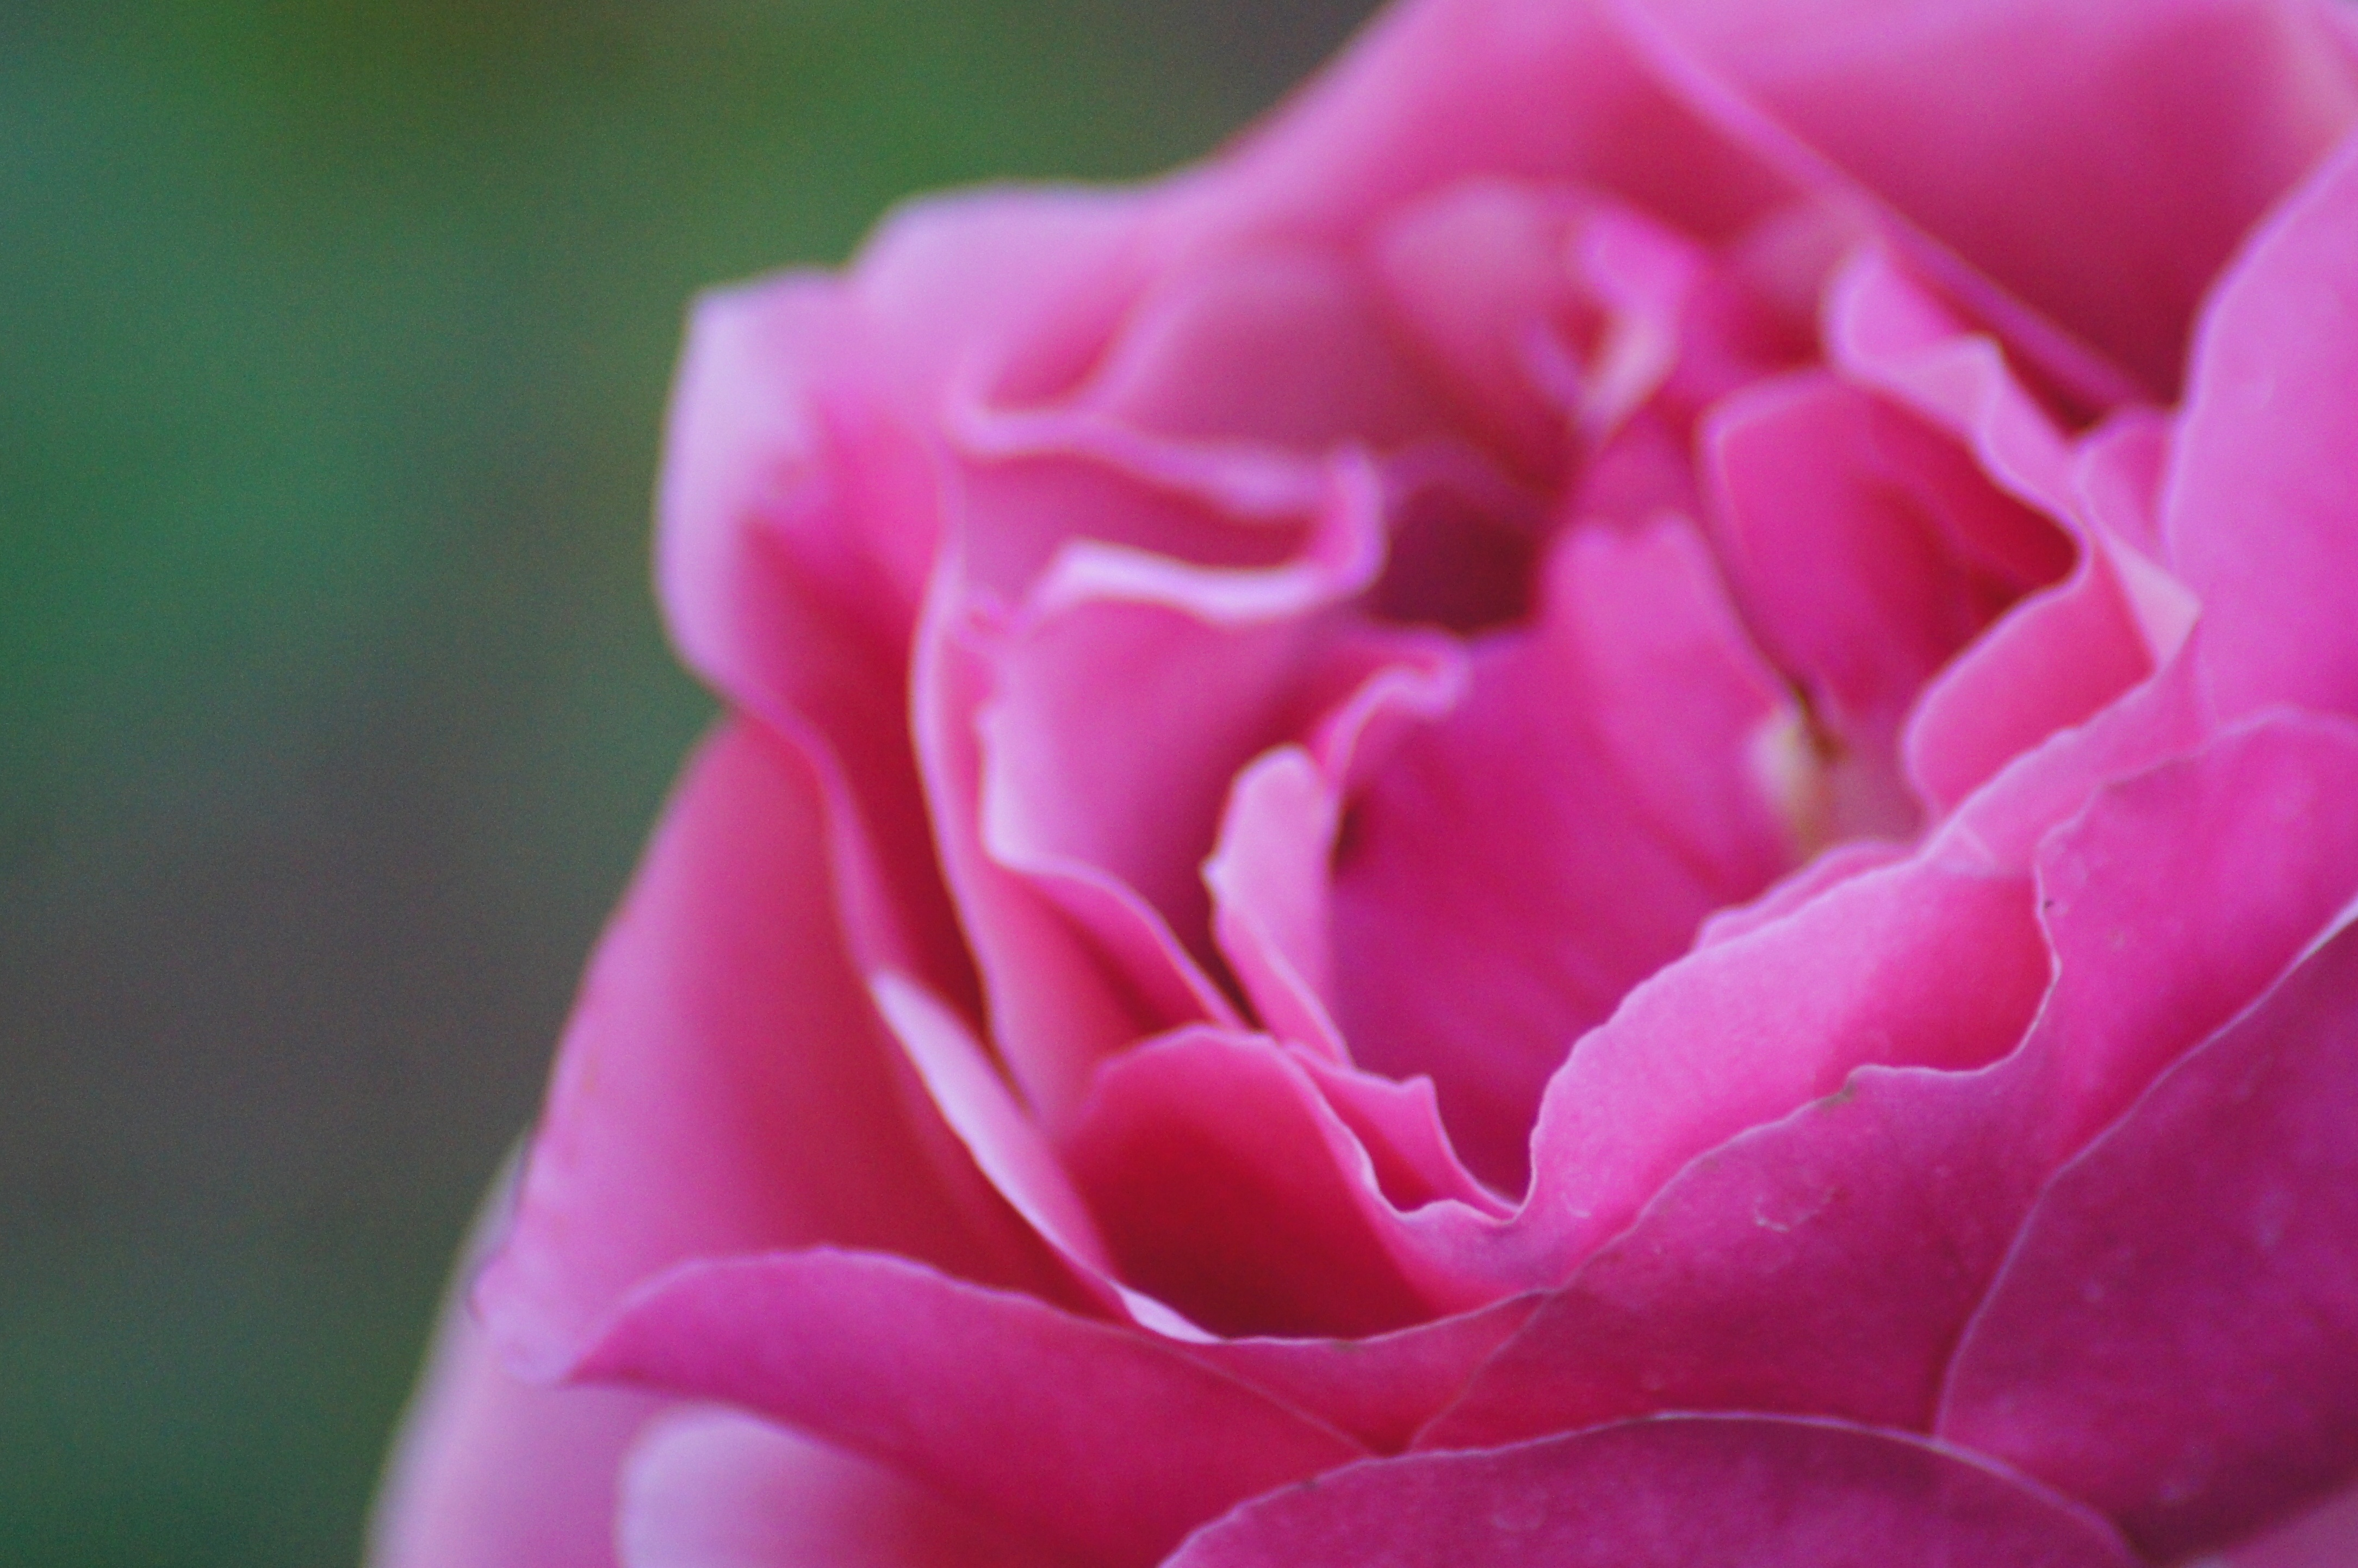 Close up macro photo of a pink rose in full bloom in January by Kristen Koster on Flickr.com